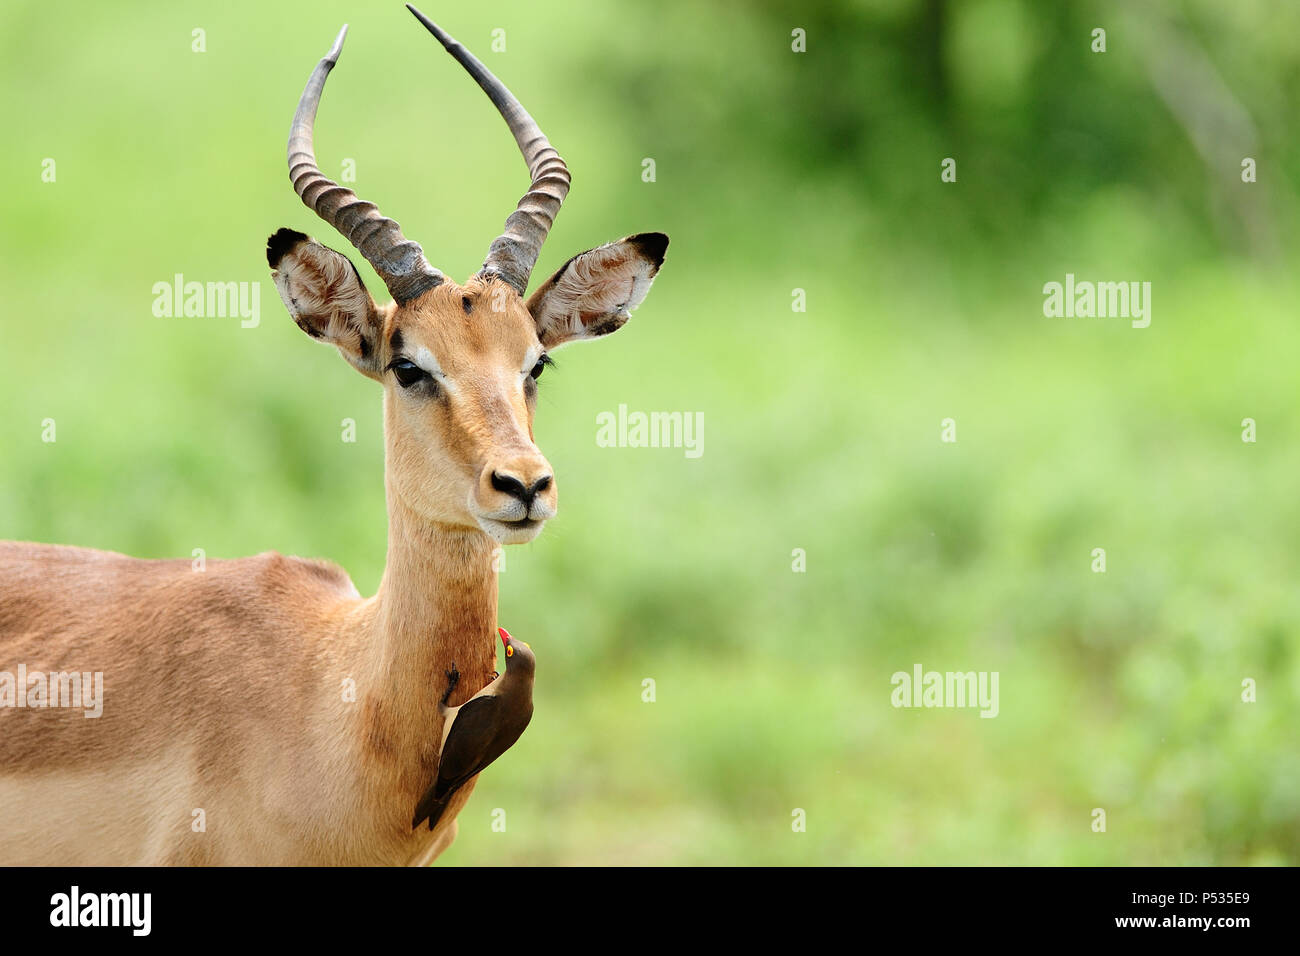 impala and oxpecker - Stock Image